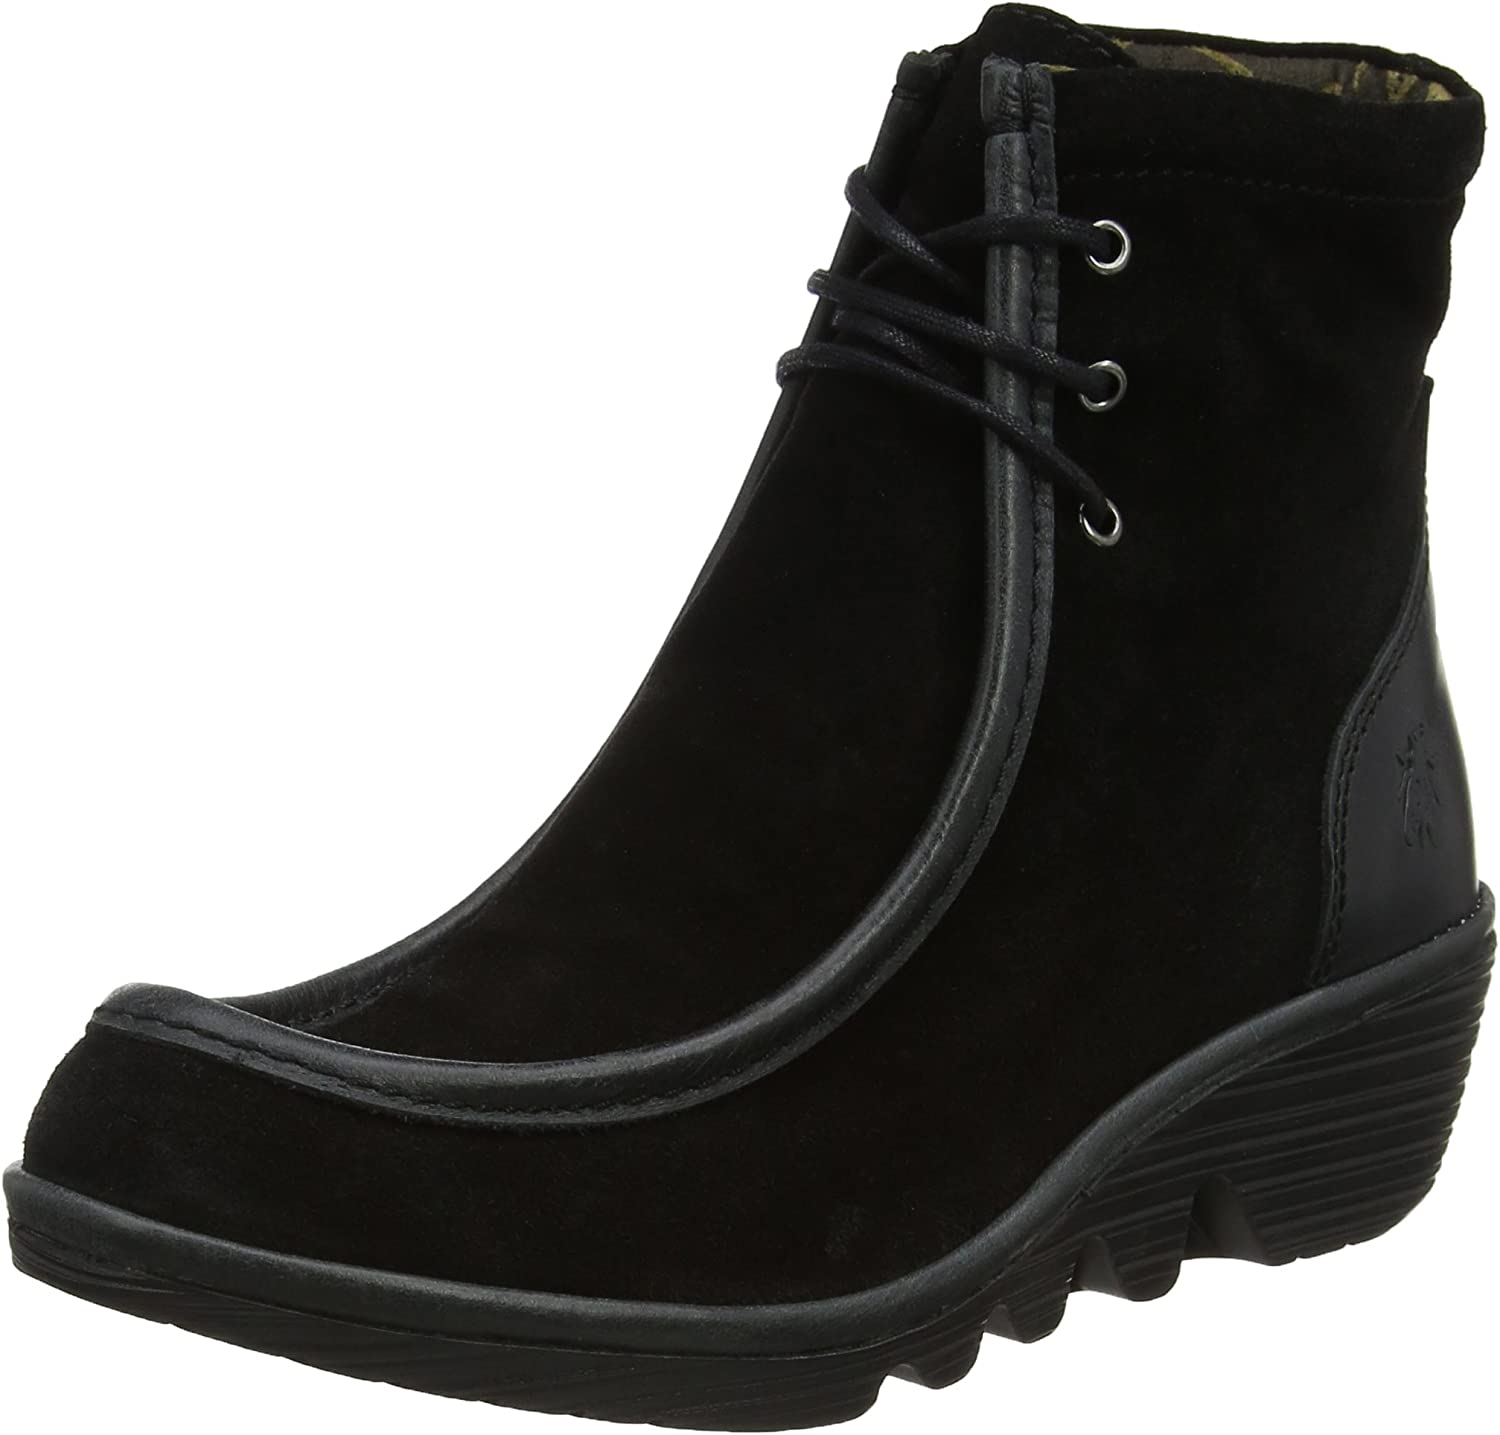 FLY London Women's Boots